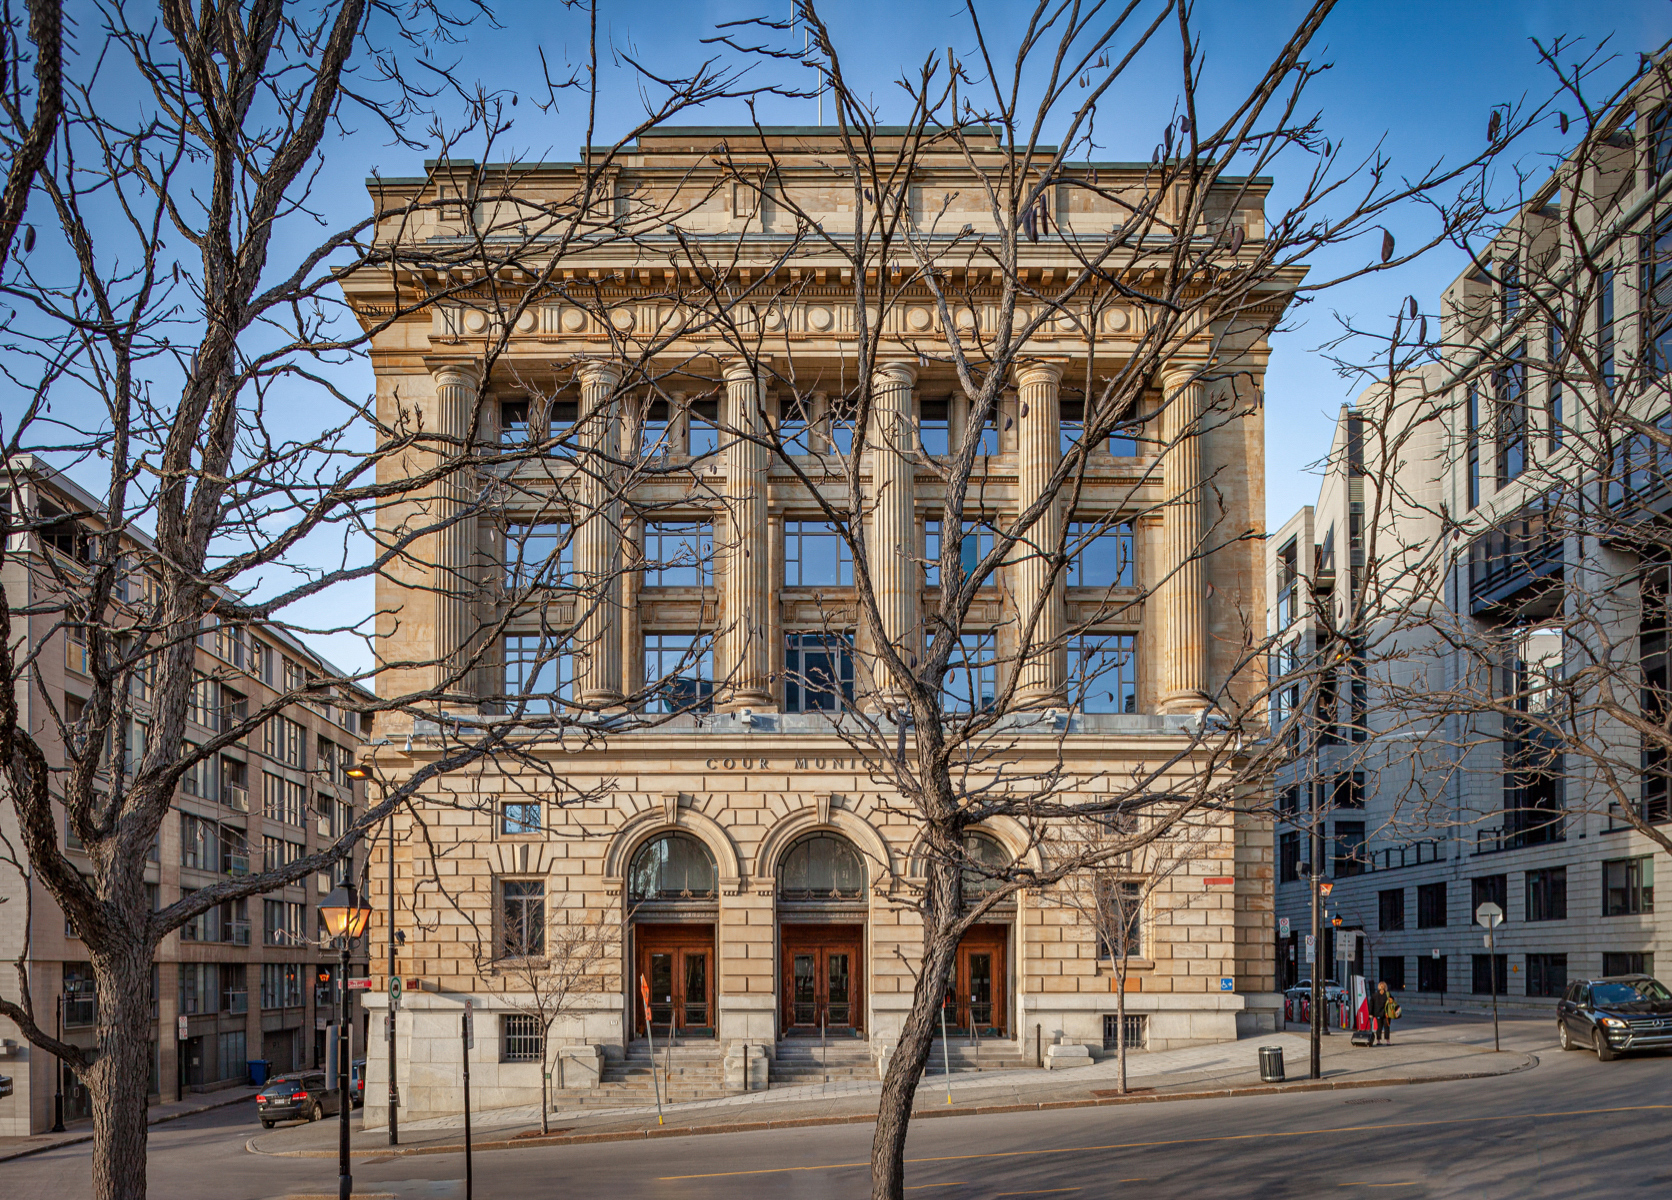 Cour Municipale (1914)  Marchand and Haskell, Architects  It continues to be used as a municipal court building    (photo by Timothy Olcott)